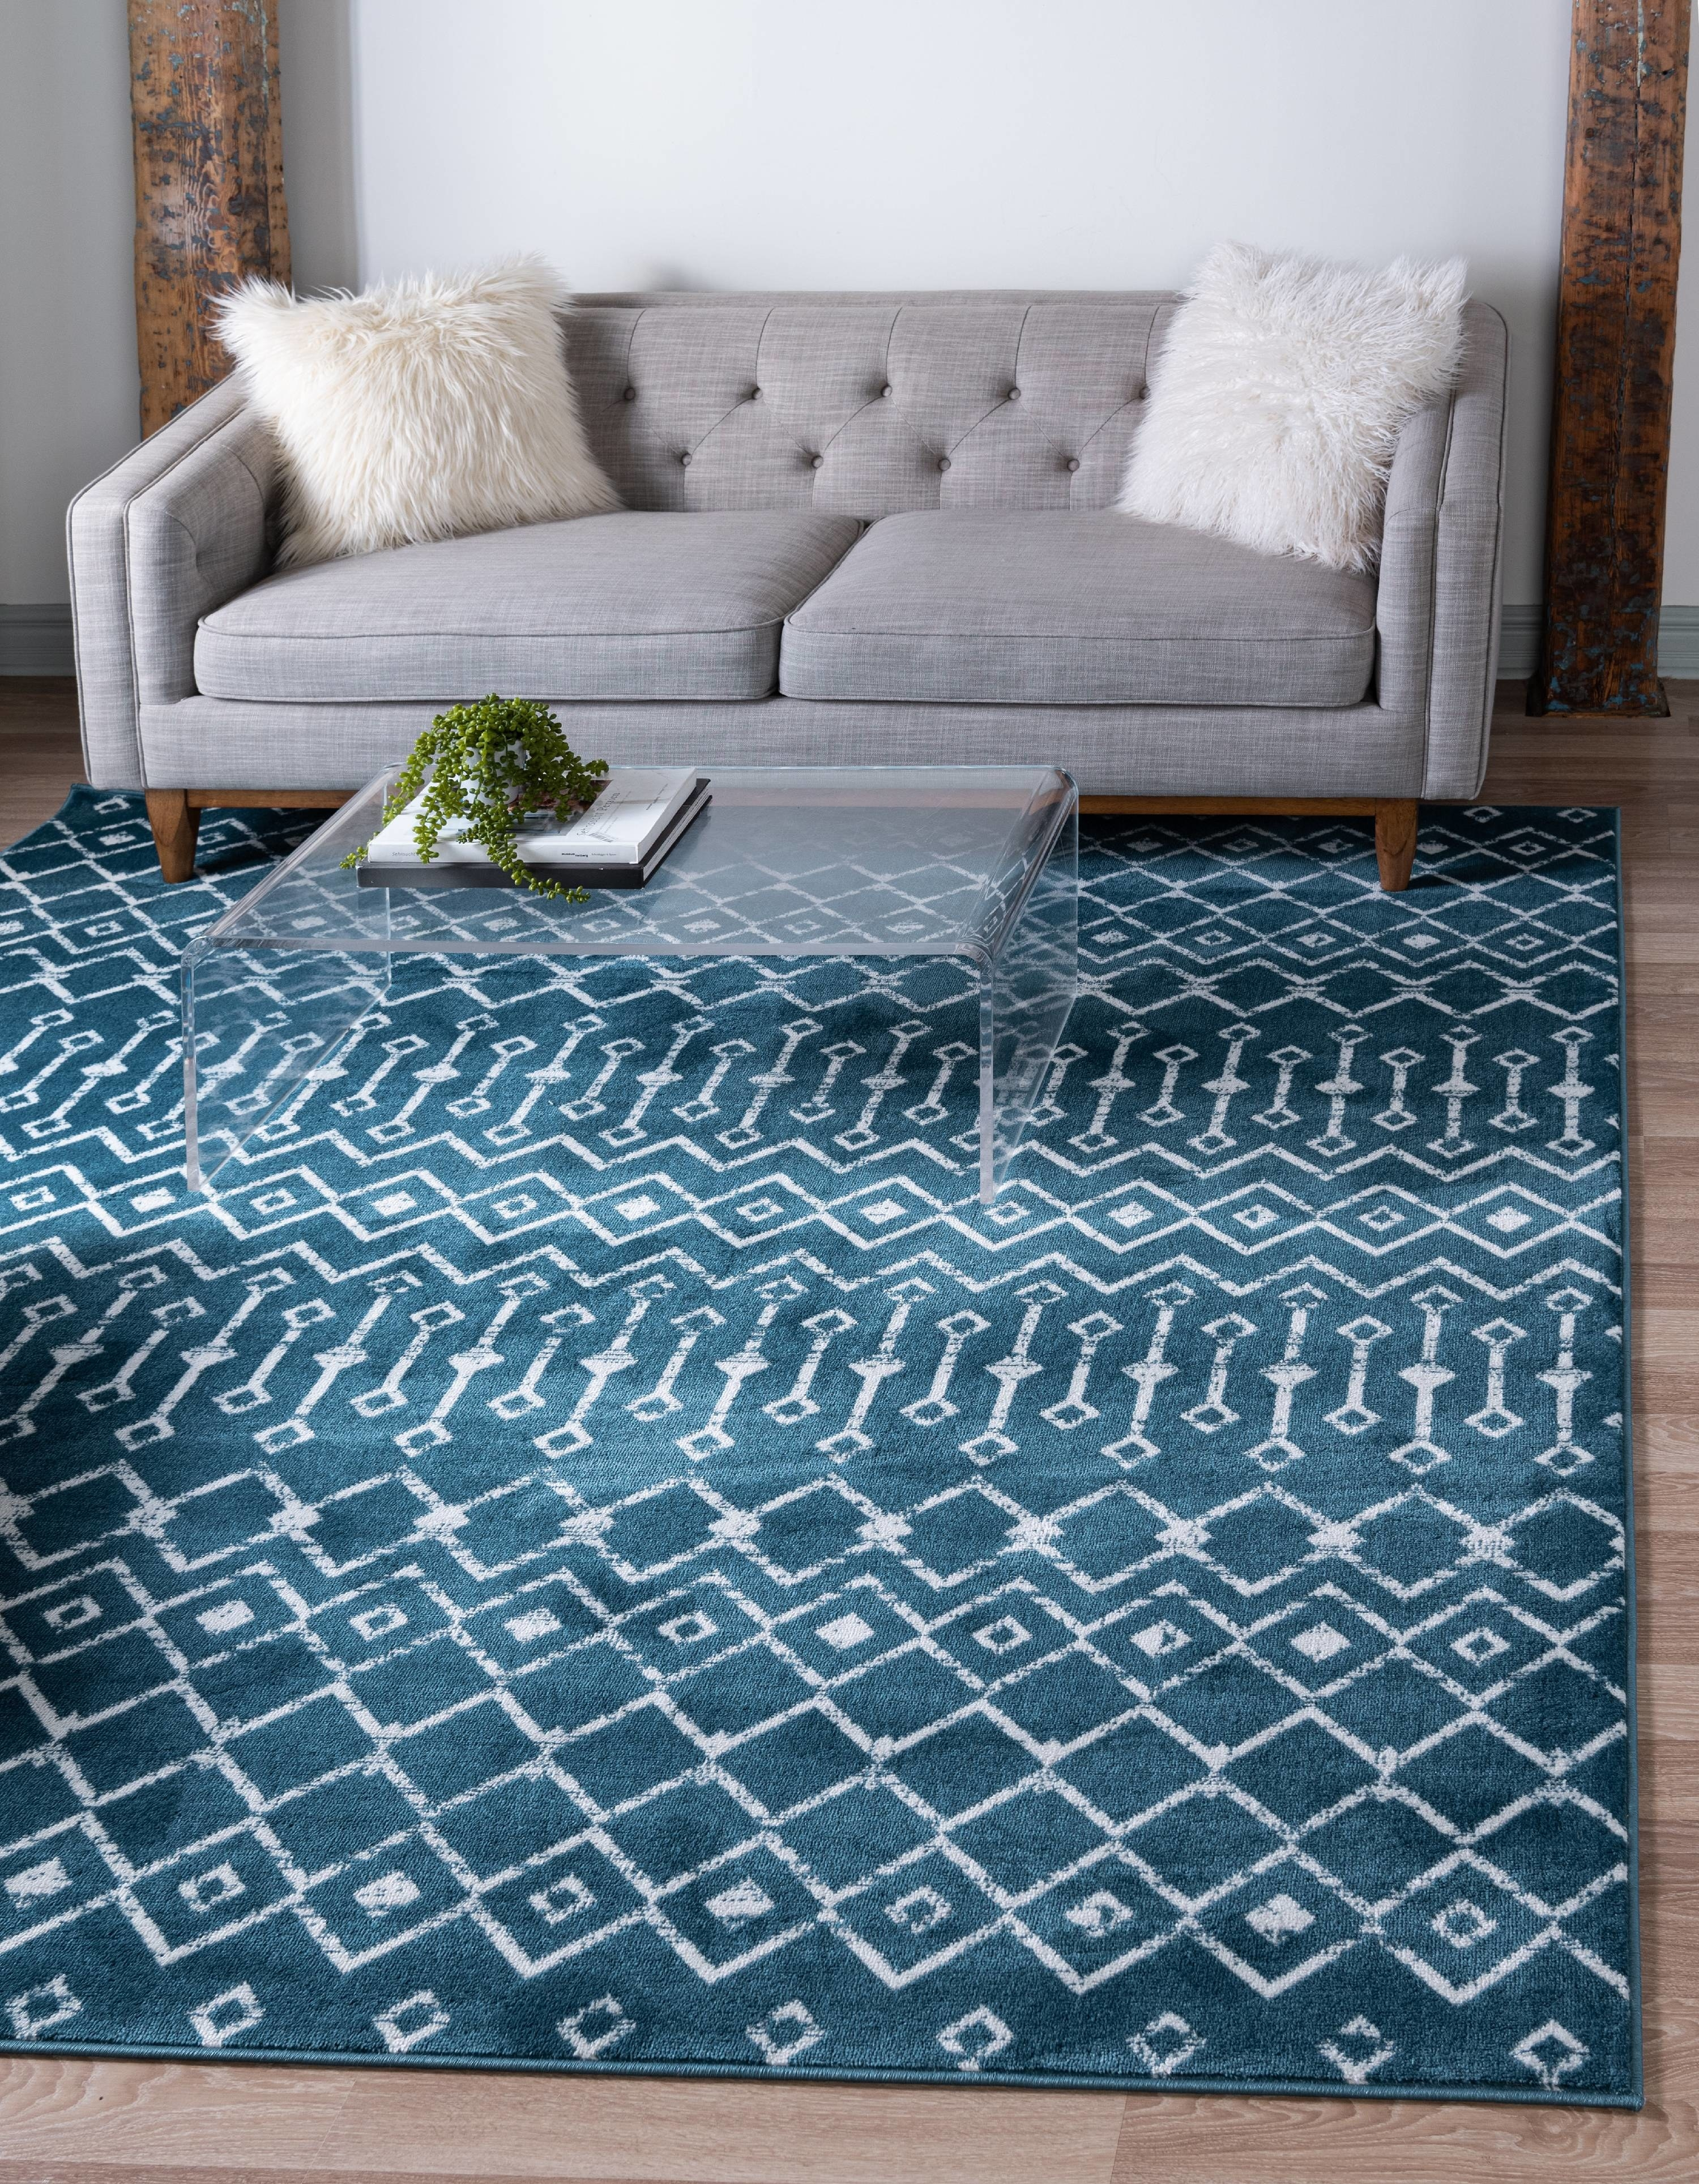 a blue rug with a white Moroccan design on it